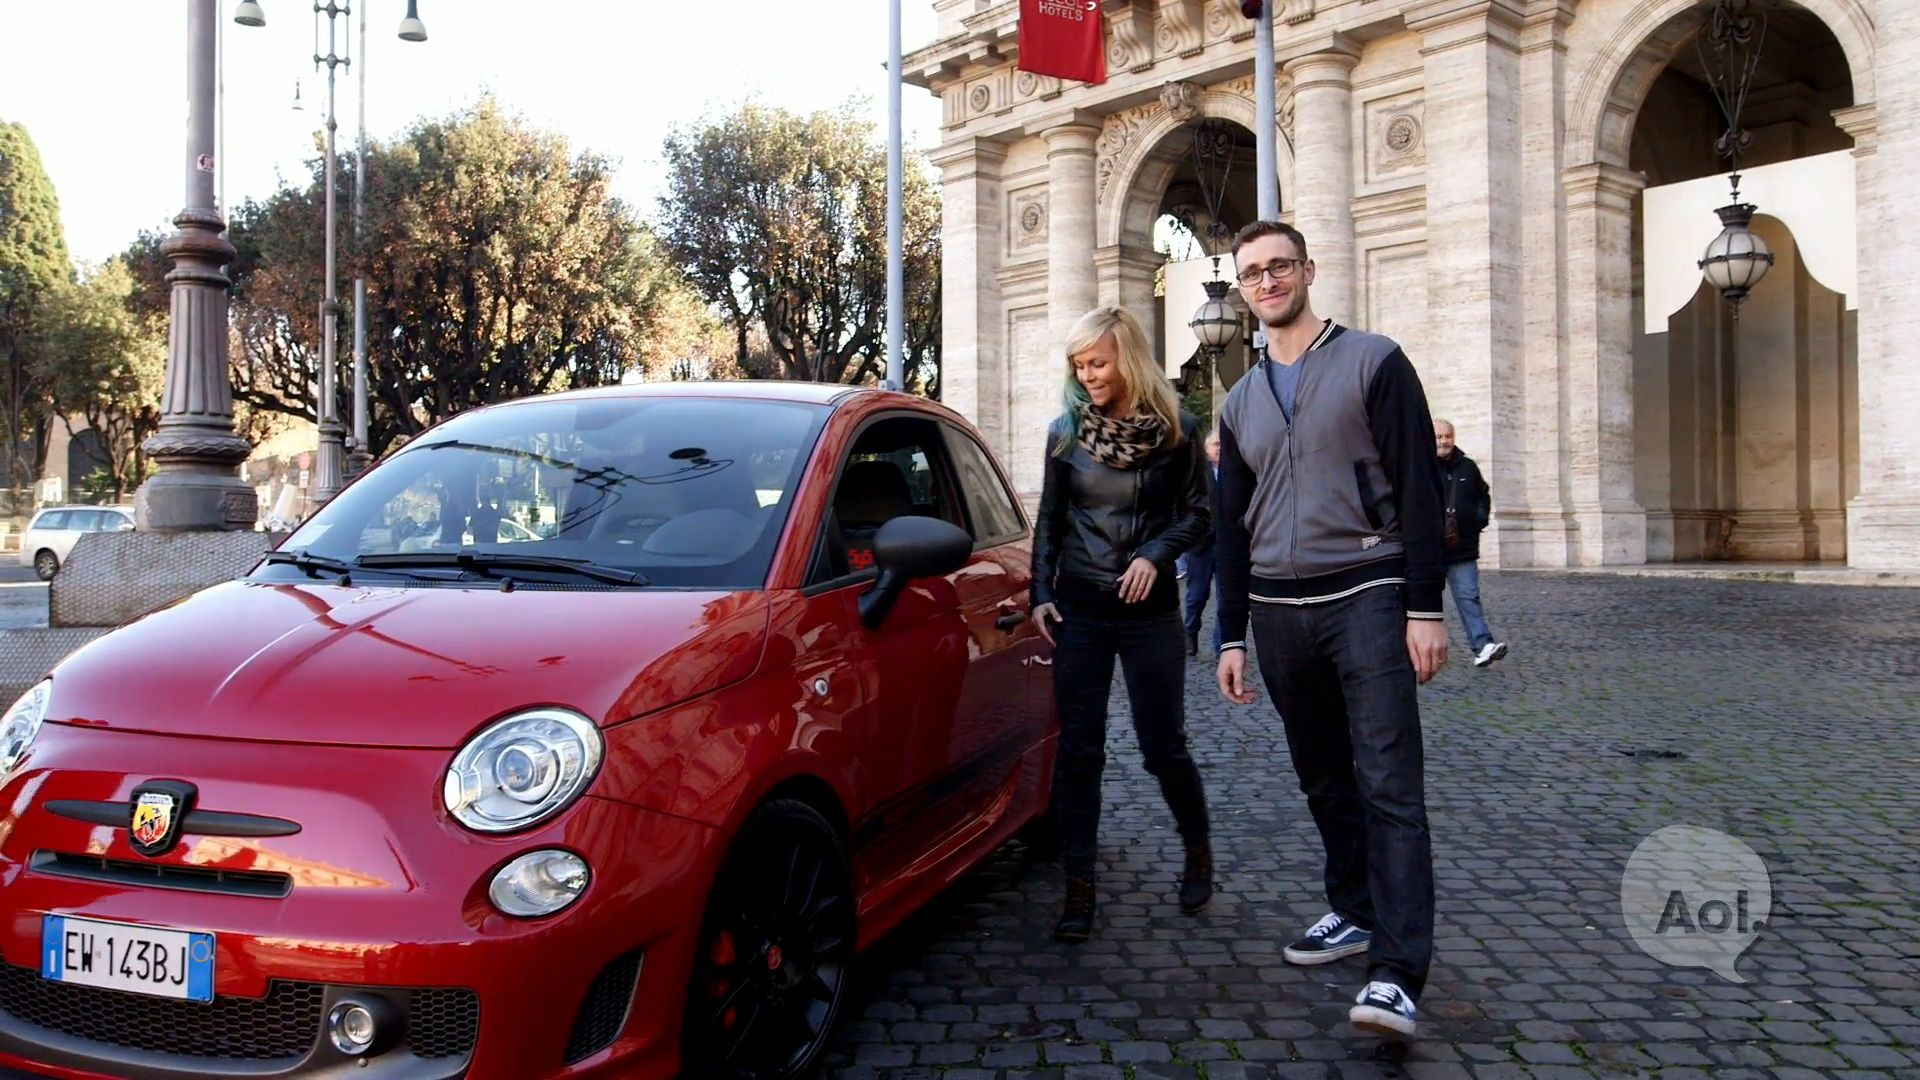 Is there anything more #ThrowbackThursday than the Eternal City of Rome? Watch this, then come down a test drive an Abarth. Or any of our 500 models, Pop, X or the Pope's personal fave, the 500L! http://www.autoblog.com/2015/10/08/drive-in-rome-the-list-0476/